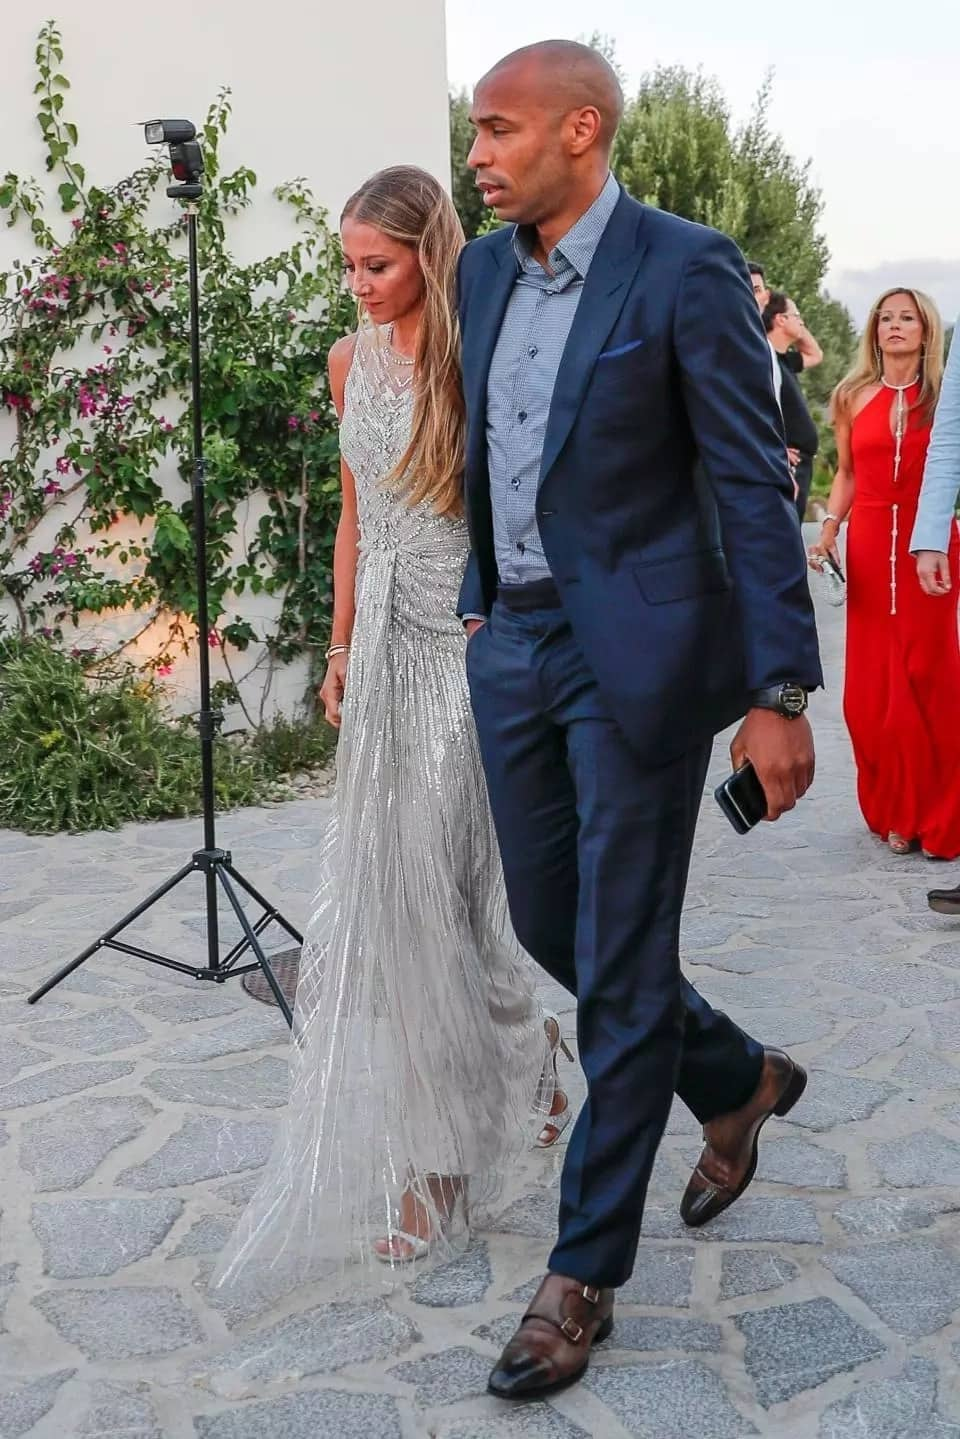 Messi, Kante, Henry others attend Fabregas wedding celebration with Daniella